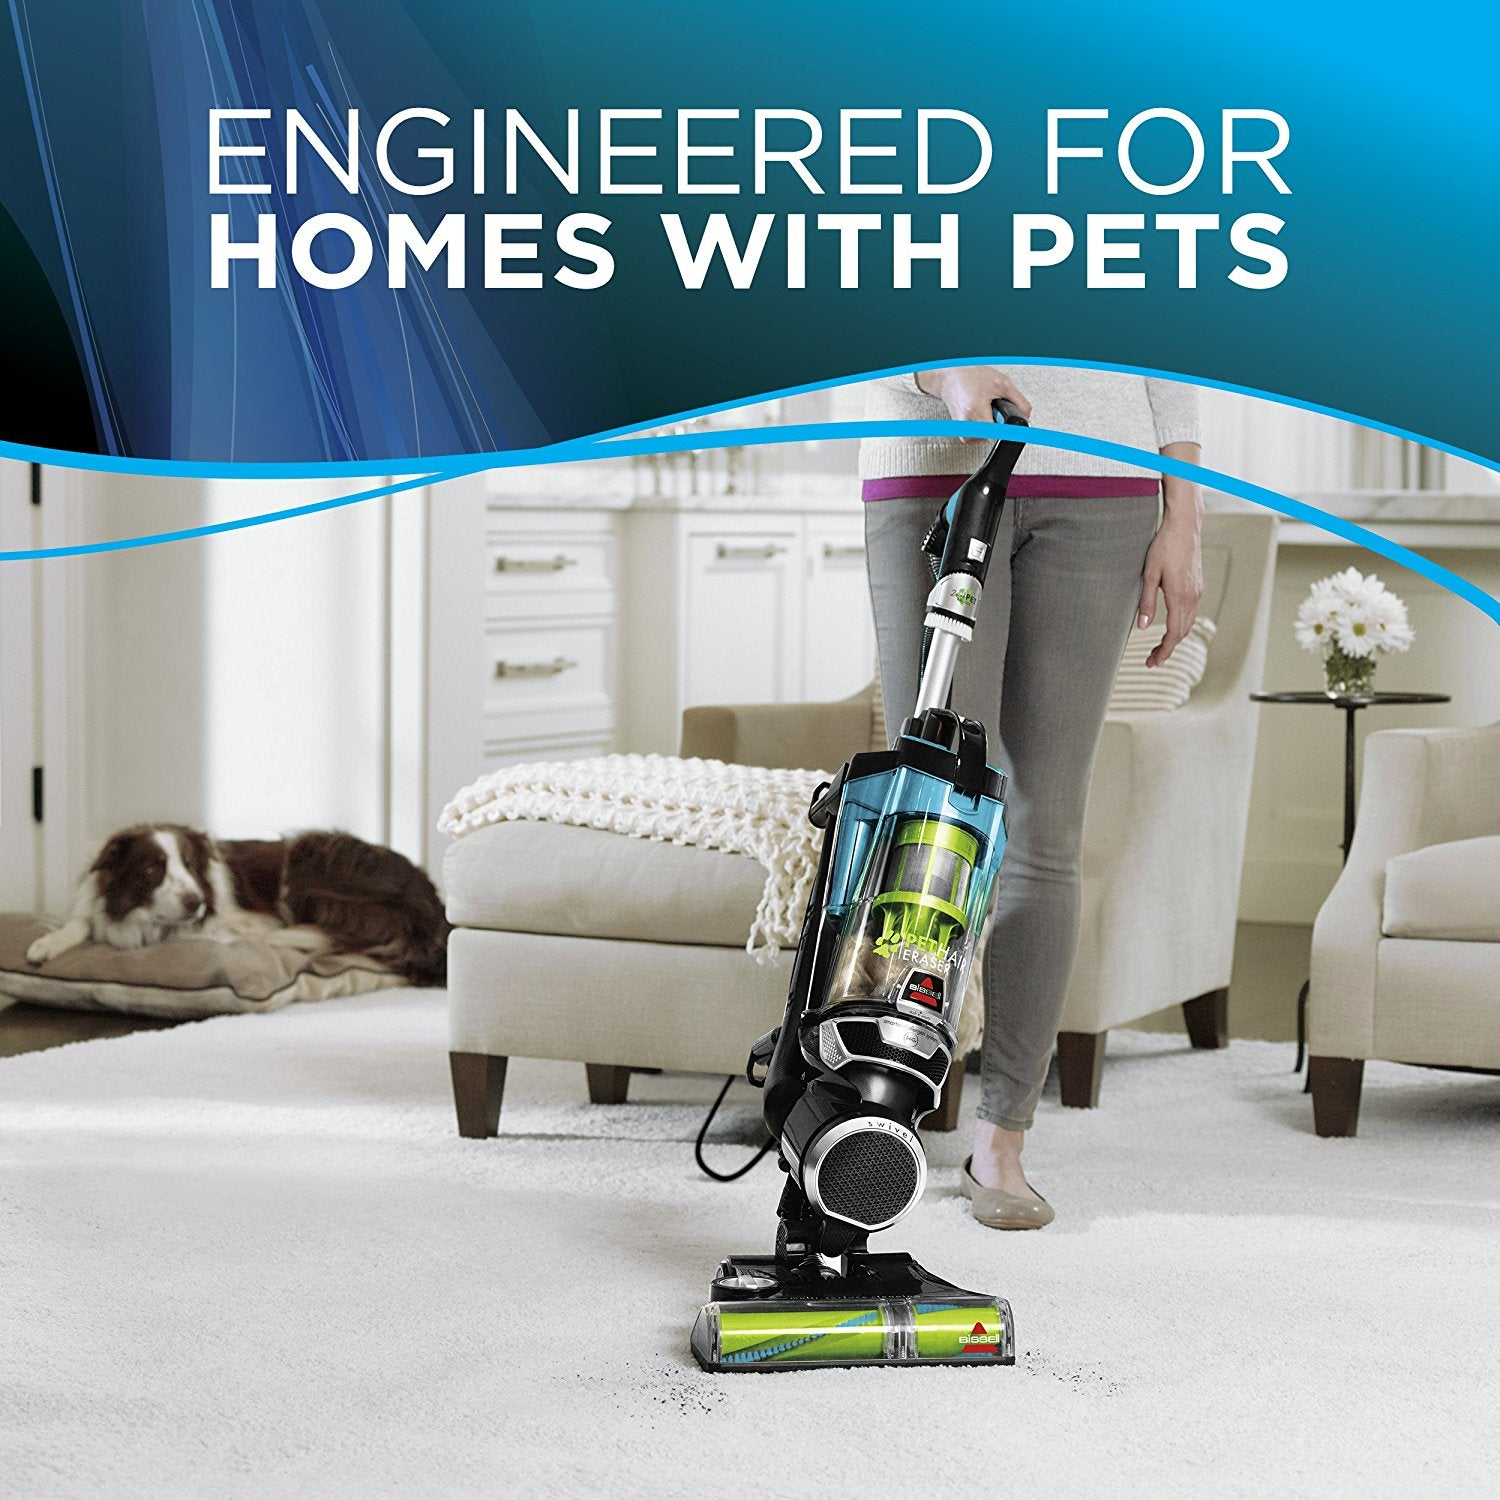 Home Kitchen Tagged Vacuums Vazlo Carpet Extractor Diagram And Parts List For Bissell Wetcarpetcleaner 16501 Pet Hair Eraser Deluxe Upright Bagless Vacuum Cleaner Blue